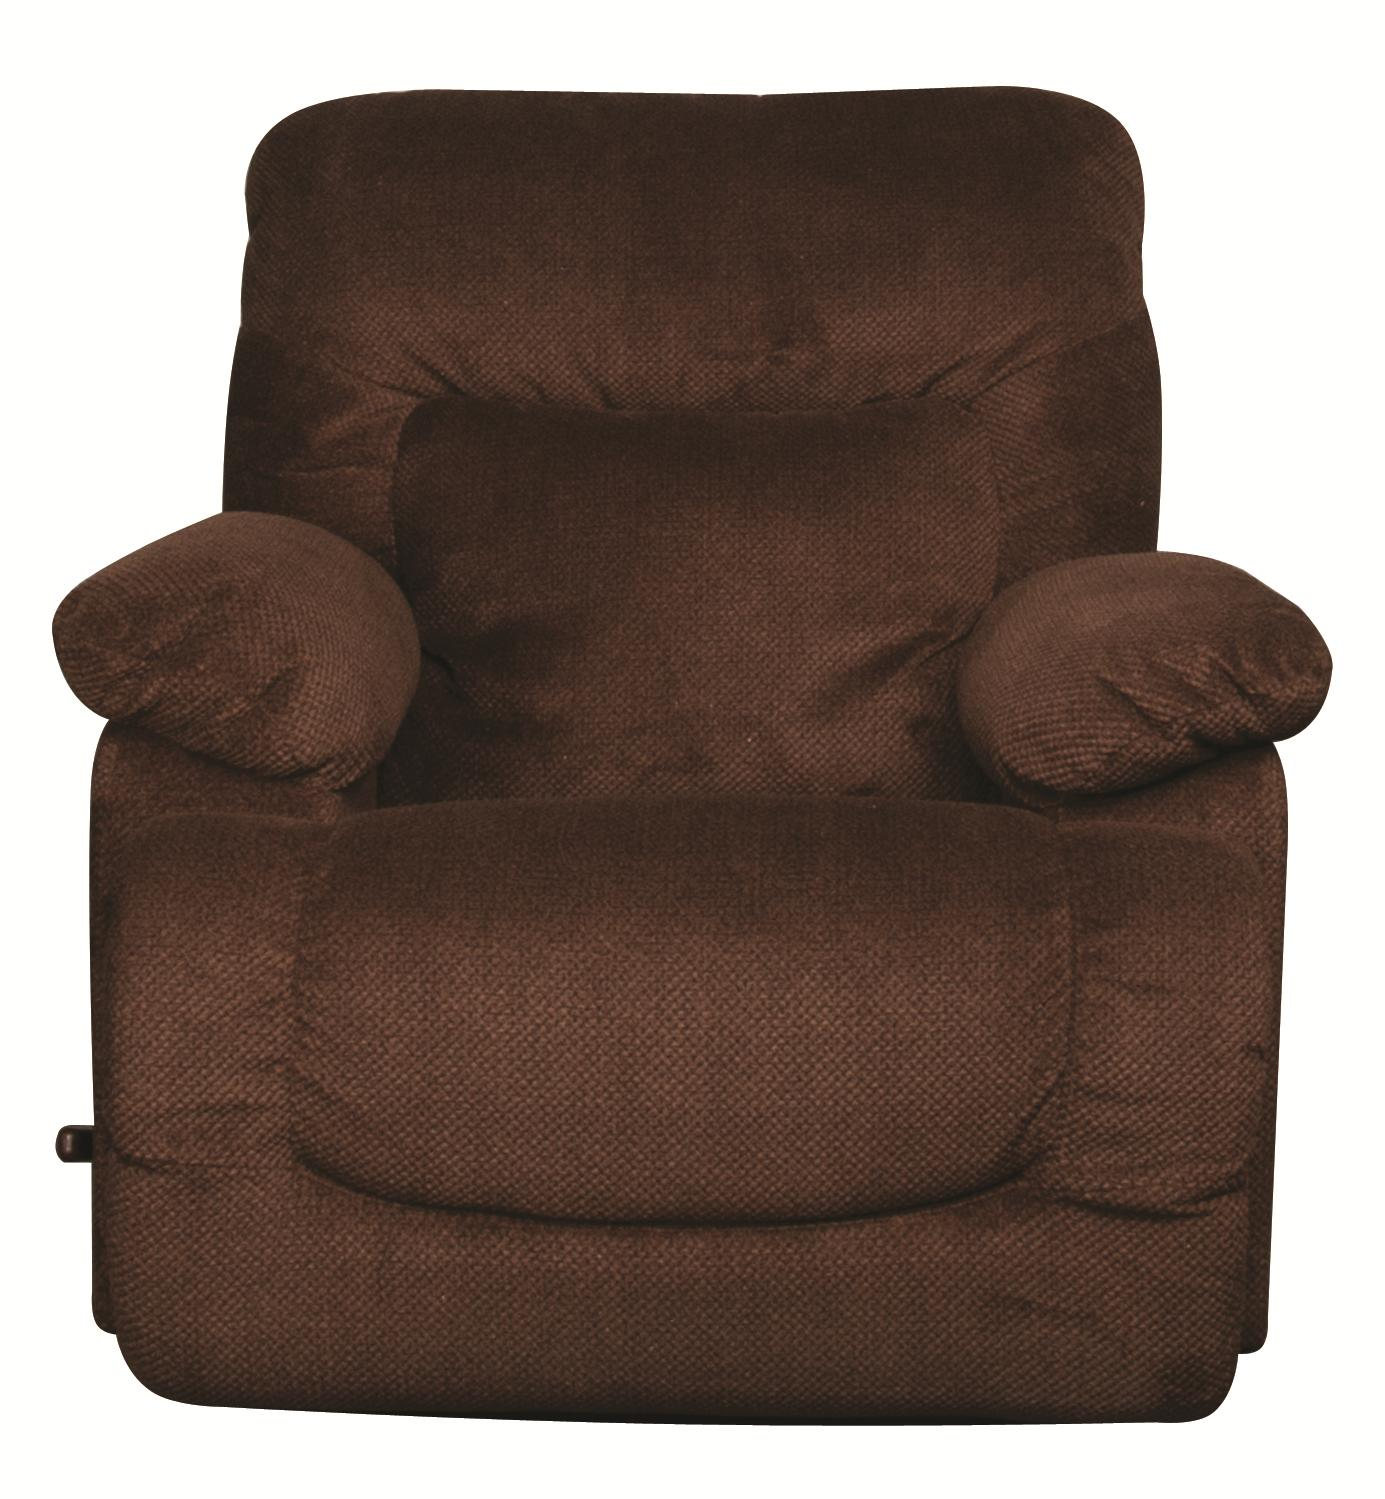 La-Z-Boy Asher Asher Wall Recliner - Item Number: 108854236